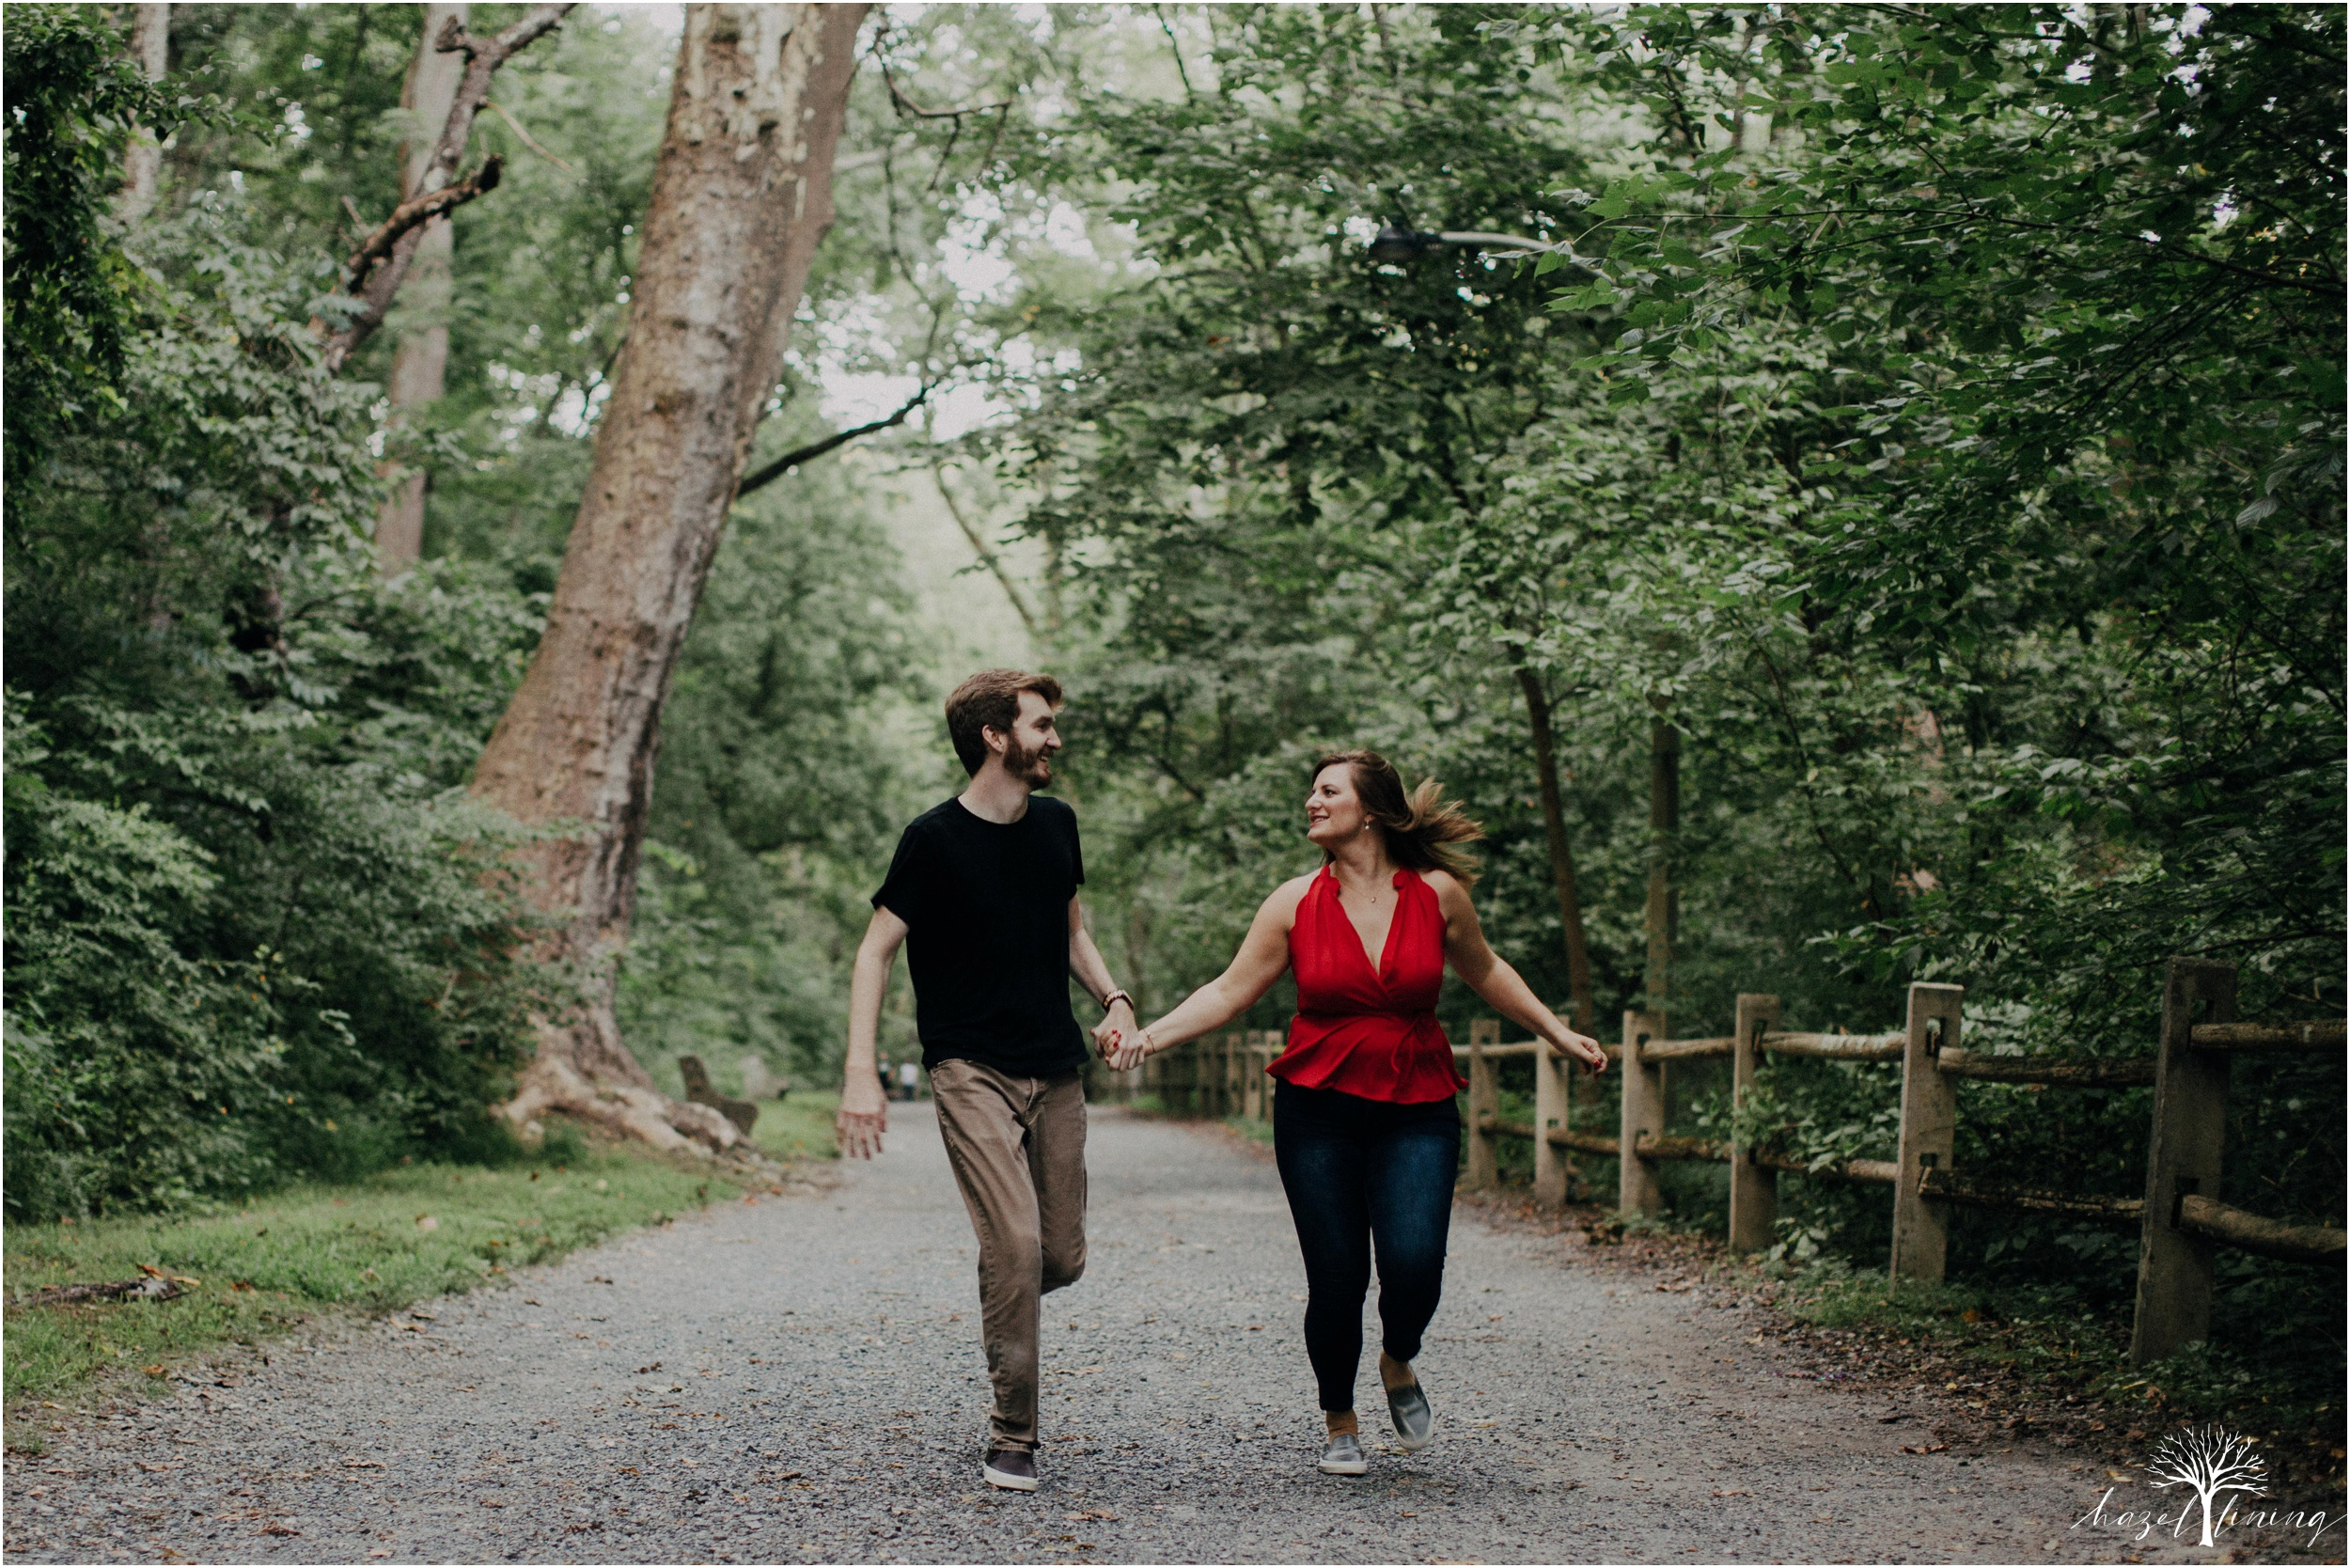 paige-kochey-chris-graham-valley-green-wissahickon-park-philadelphia-summer-engagement-session-hazel-lining-photography-destination-elopement-wedding-engagement-photography_0059.jpg